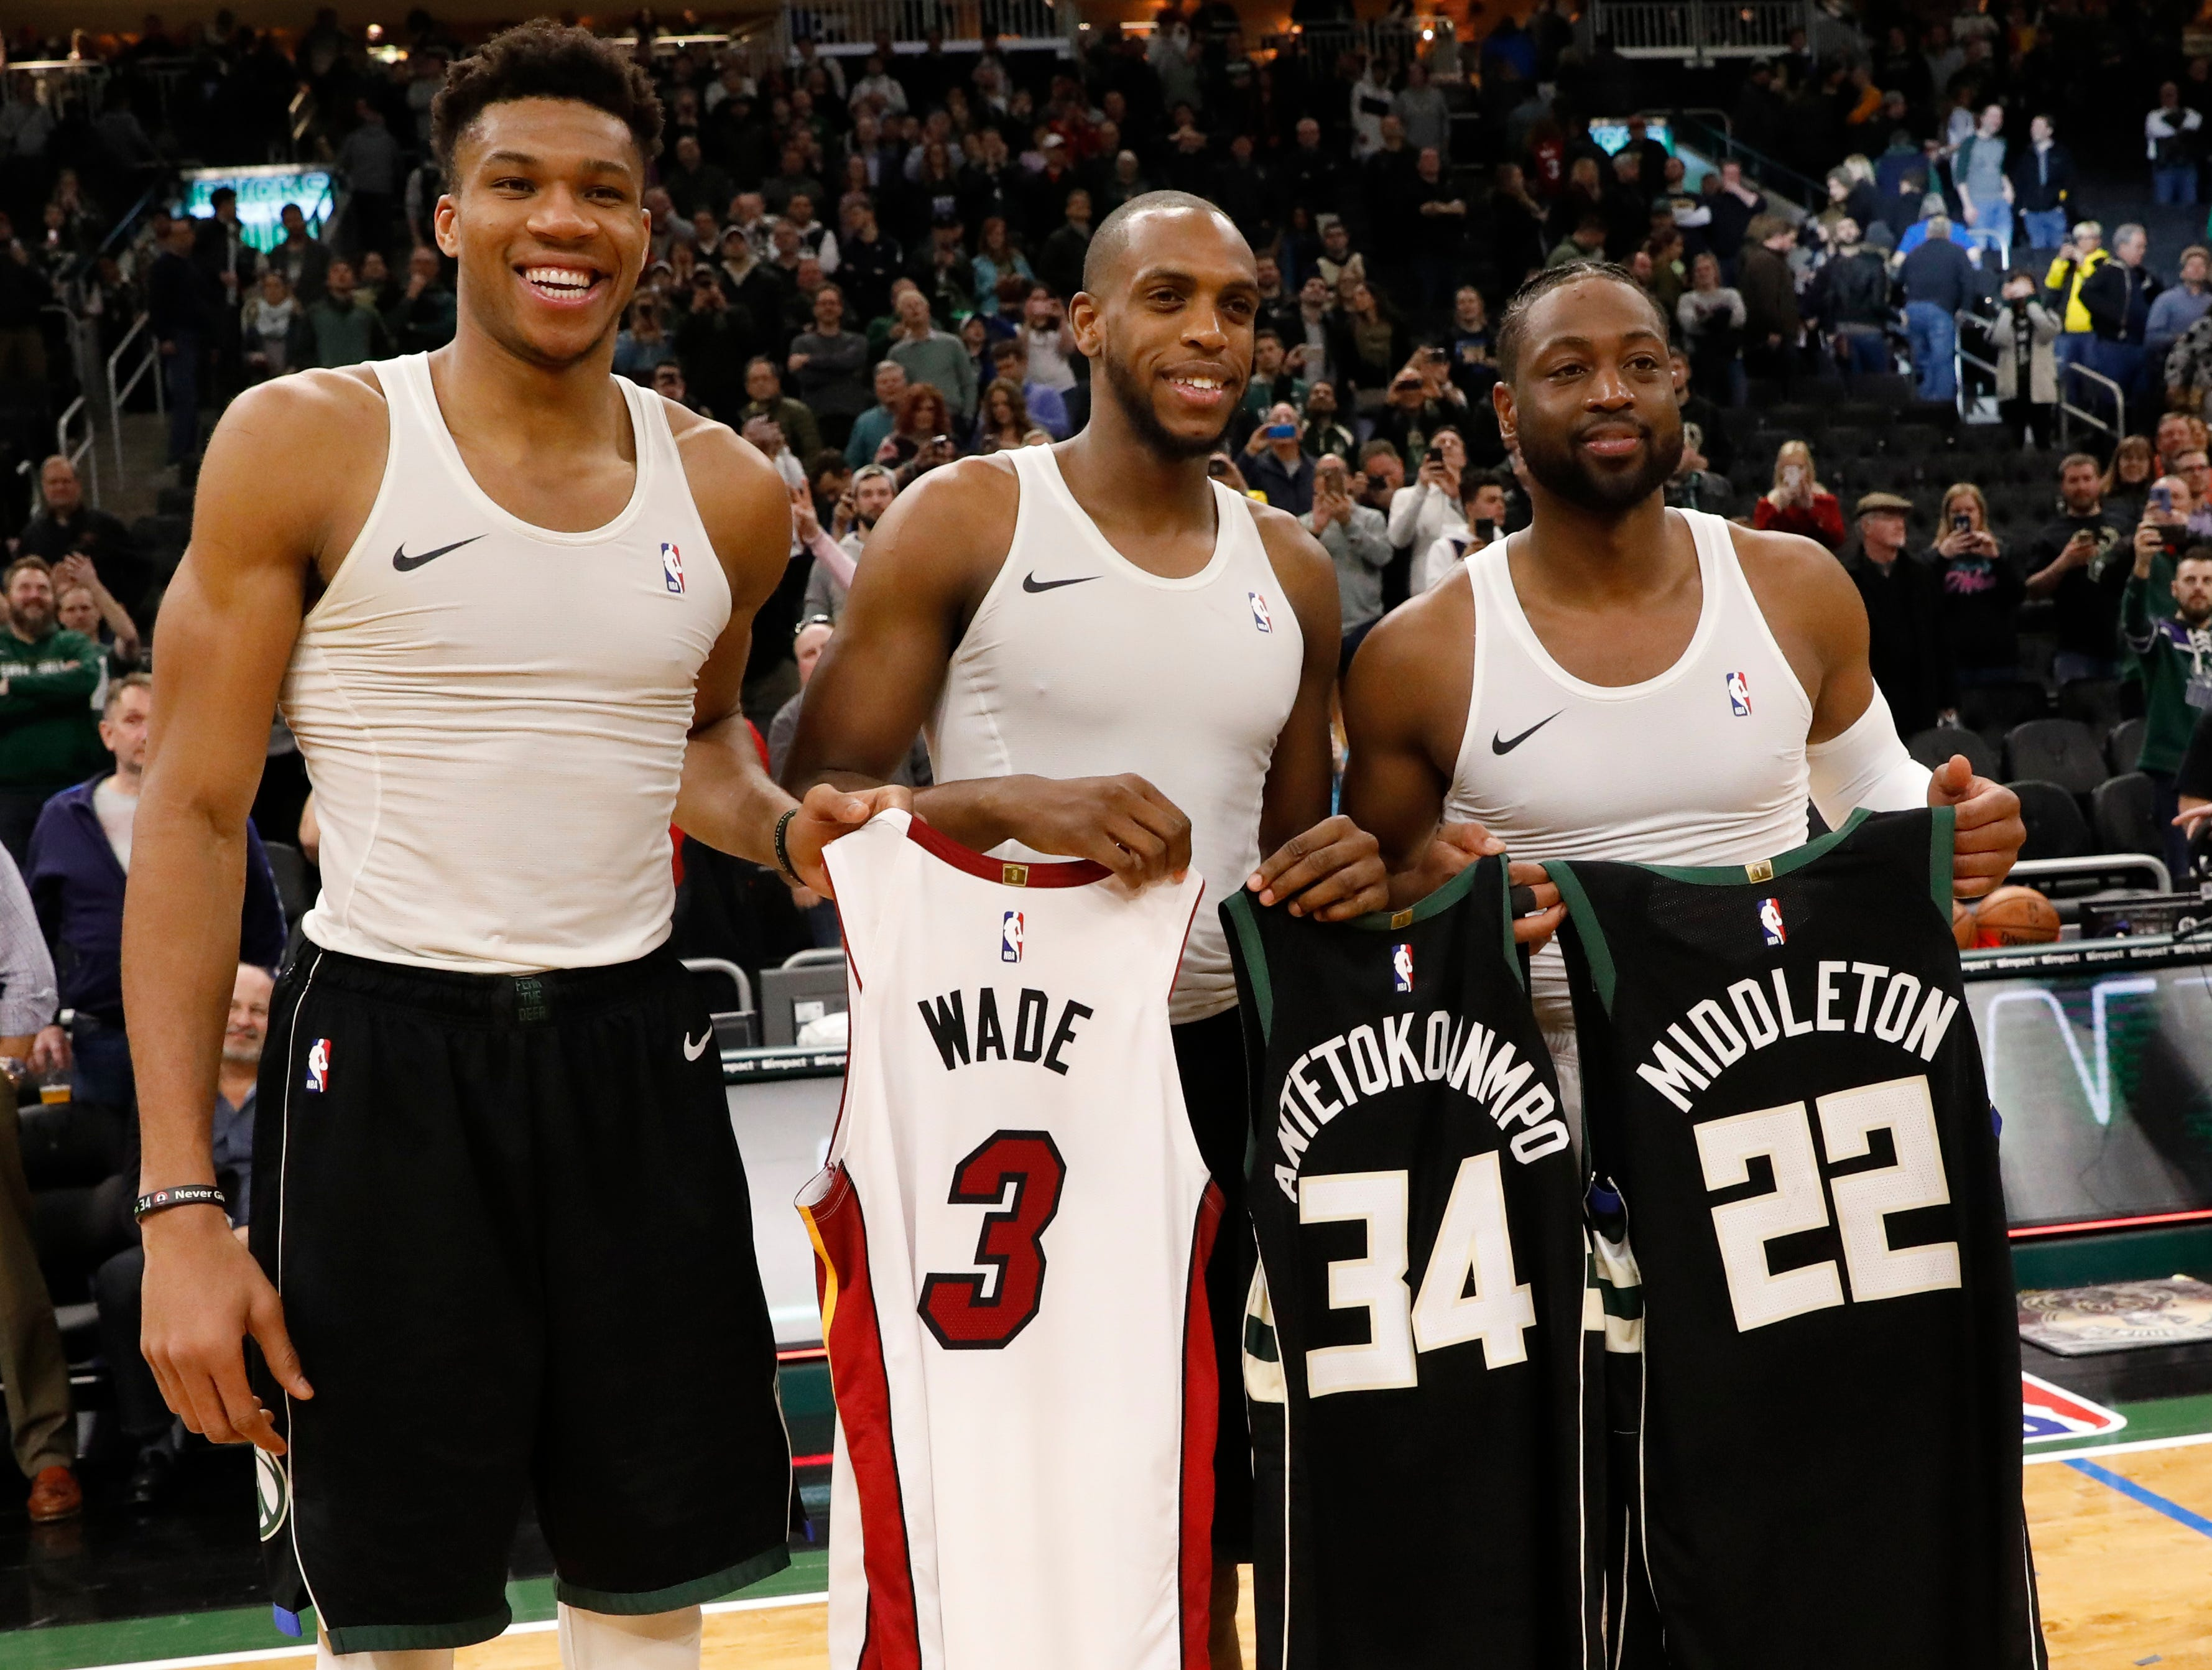 Giannis Antetokounmpo and Khris Middleton of the Bucks swap jerseys with former Marquette star Dwyane Wade. The Heat star is retiring after this season and was playing his final regular-season game in Milwaukee on Friday night.